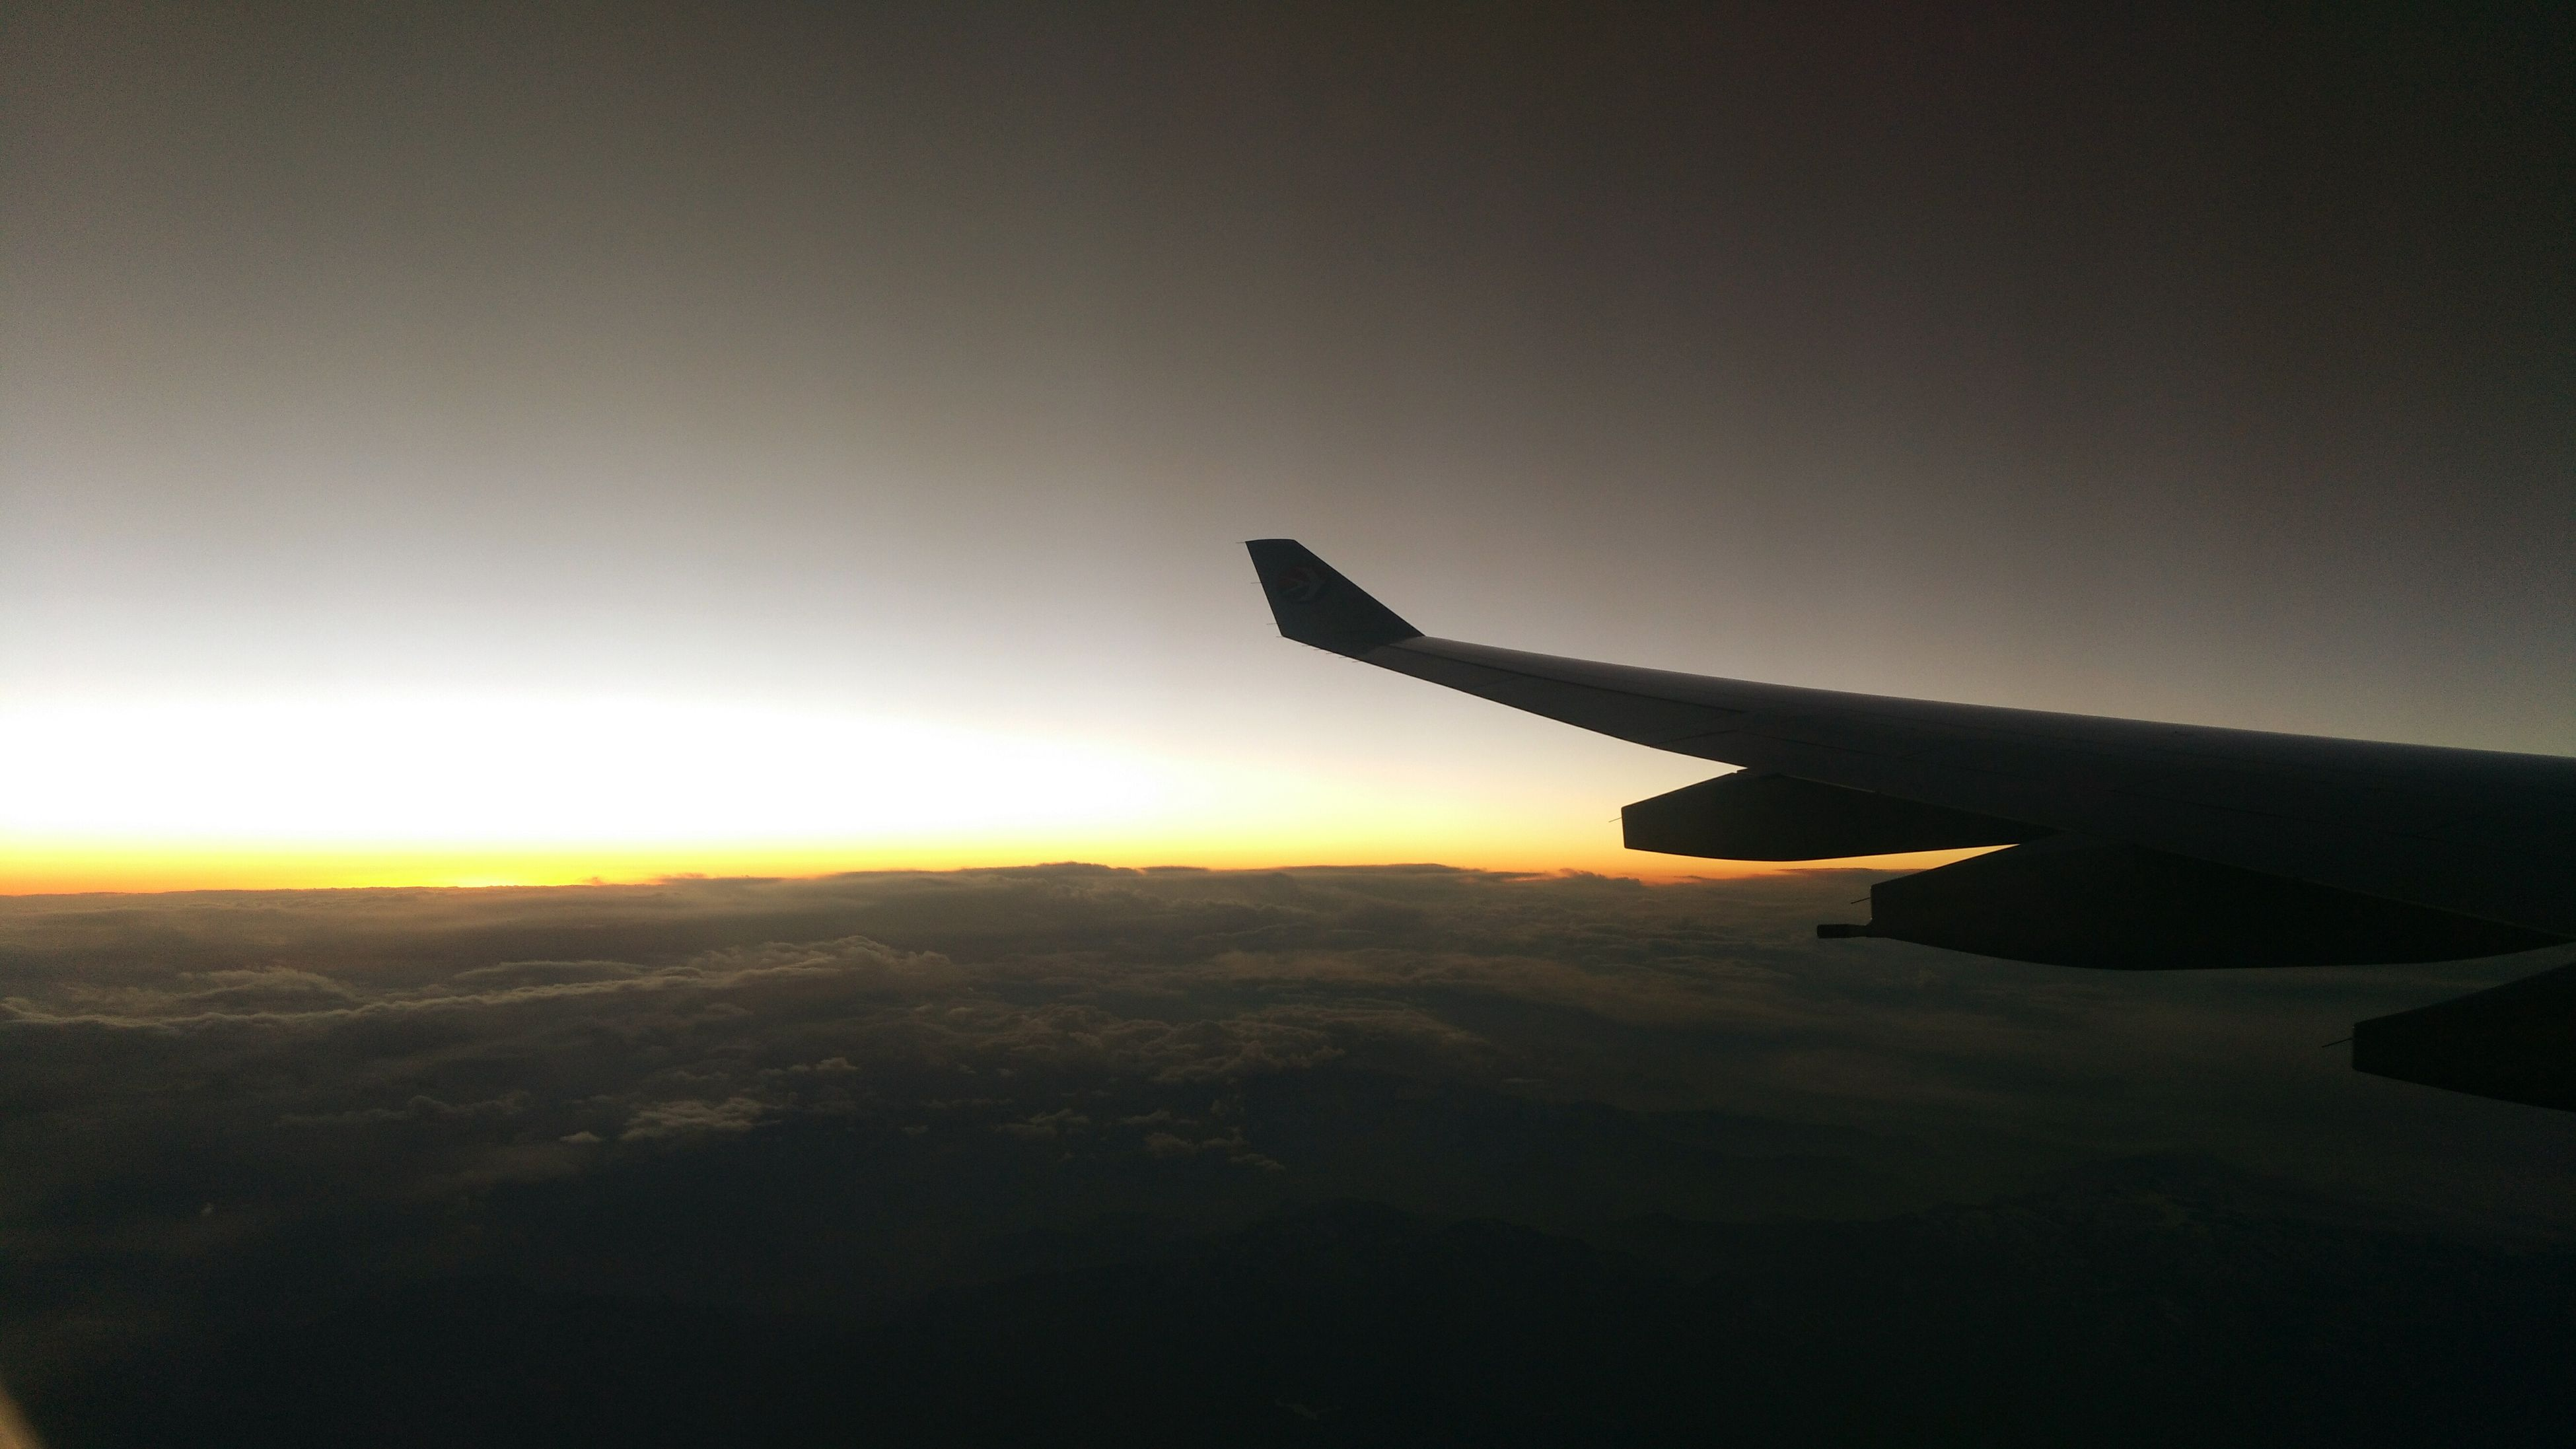 airplane, air vehicle, flying, transportation, mode of transport, sunset, aircraft wing, landscape, mid-air, sky, travel, scenics, beauty in nature, on the move, silhouette, journey, nature, copy space, aerial view, tranquil scene